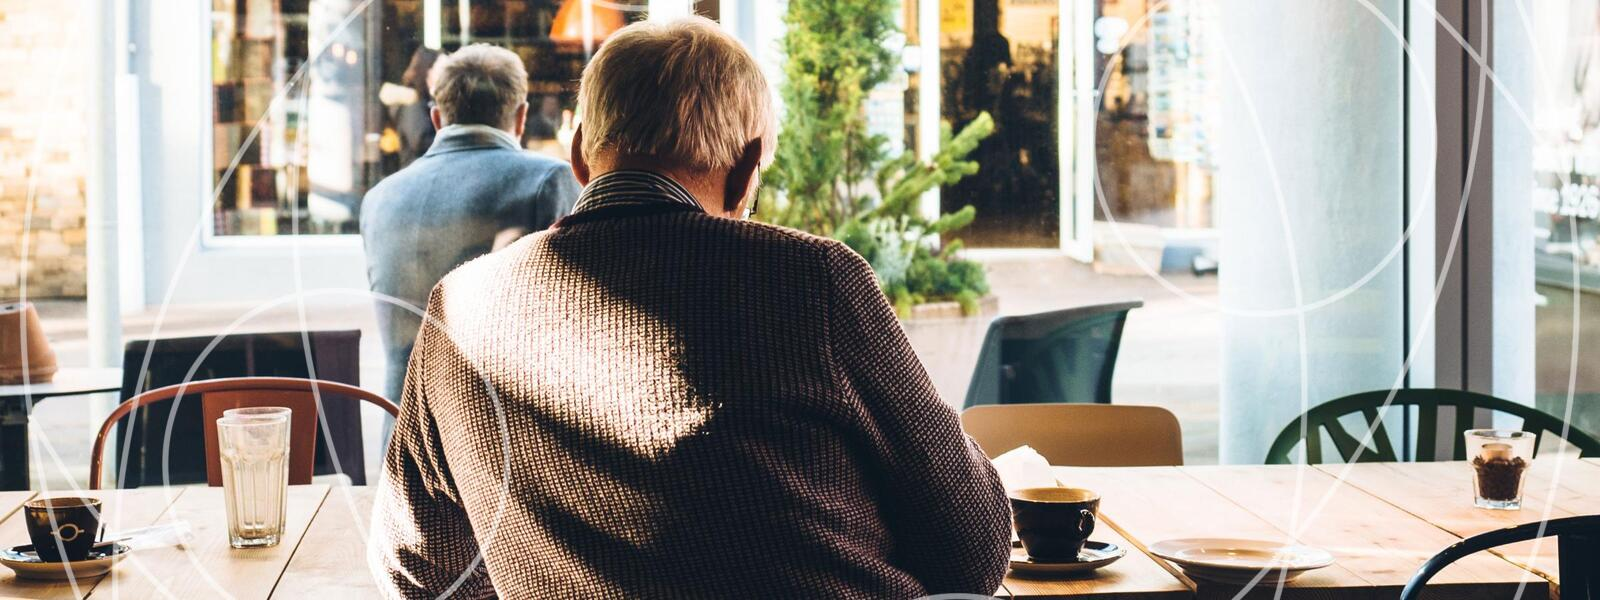 older man's back turned to viewer, studying and reading in coffee shop